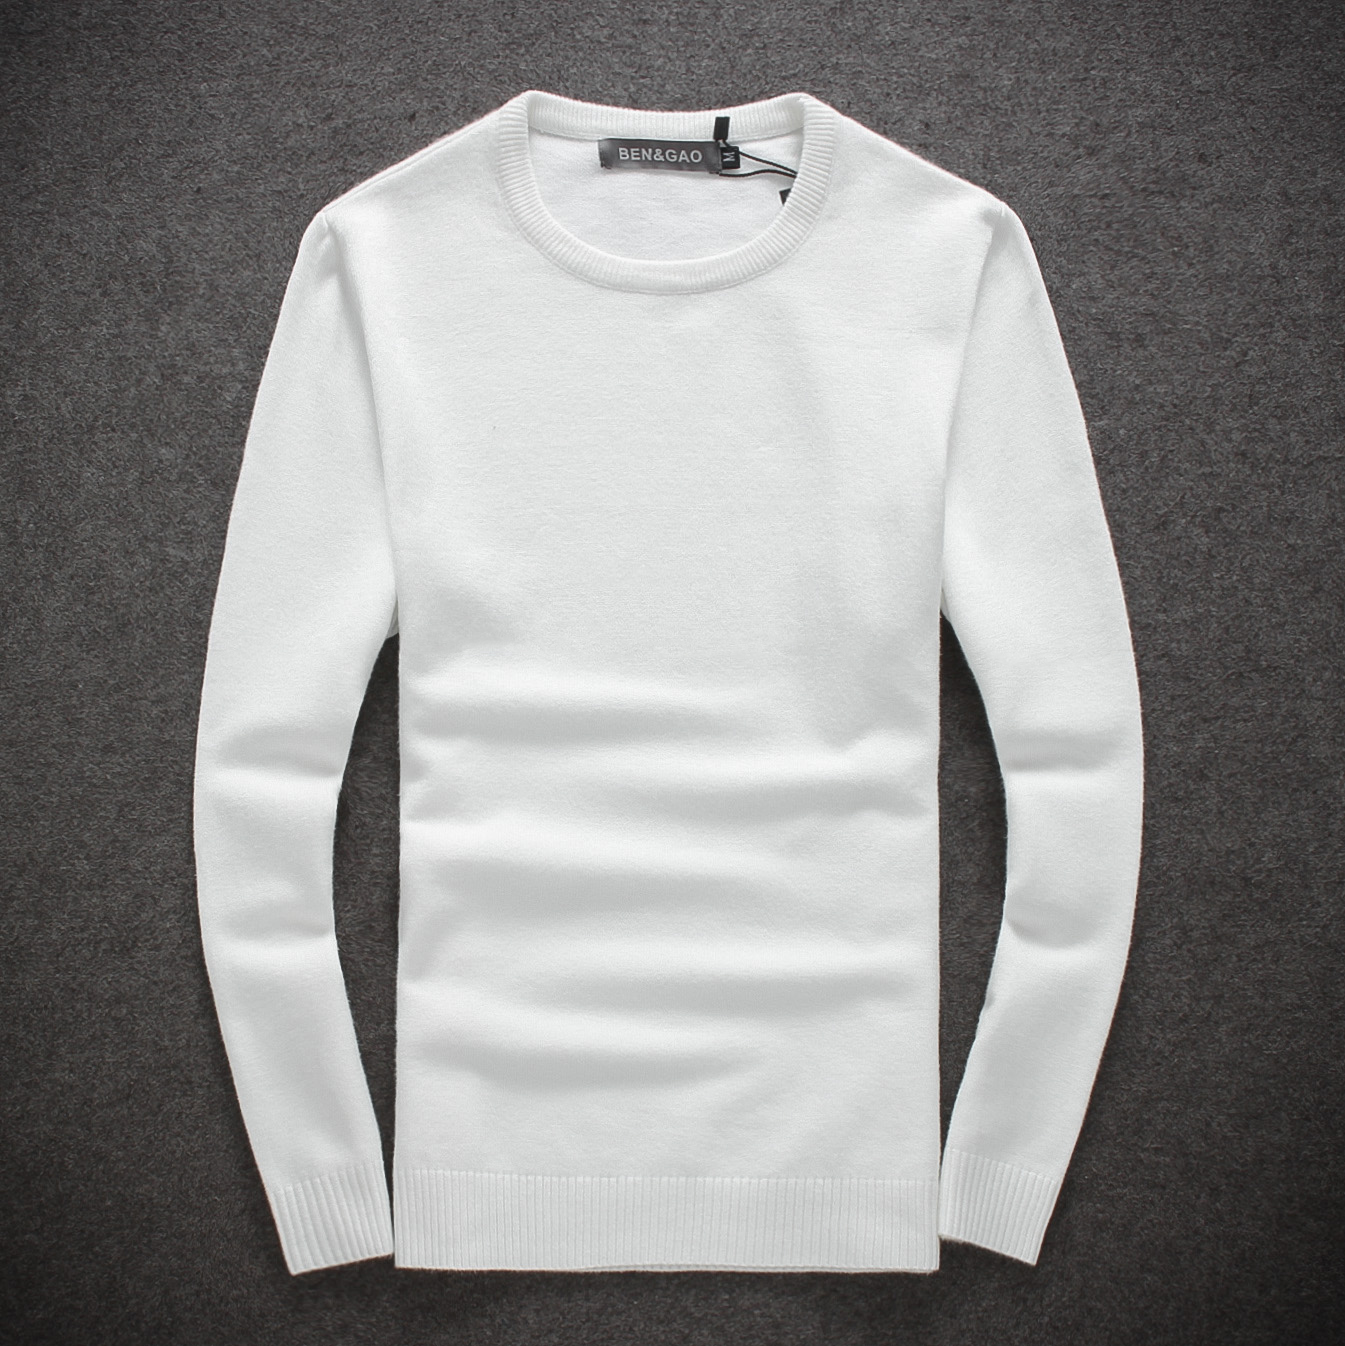 Winter mens solid white round neck sweater, Korean version slim fit sweater, pullover, bottomed cashmere sweater, knitwear trend